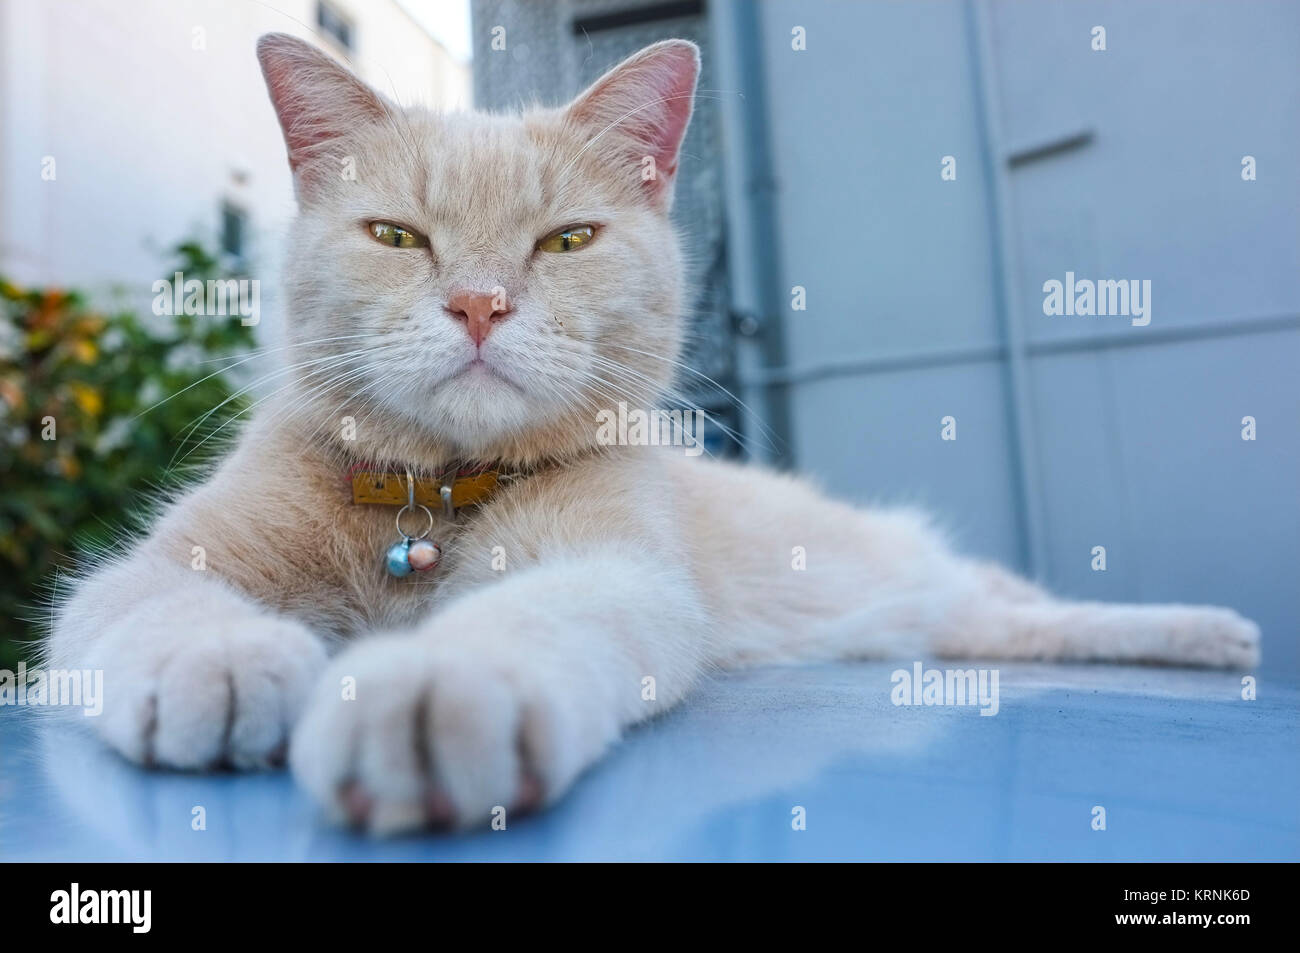 cat-resting-on-the-roof-of-a-car-and-looking-at-the-camera-KRNK6D.jpg